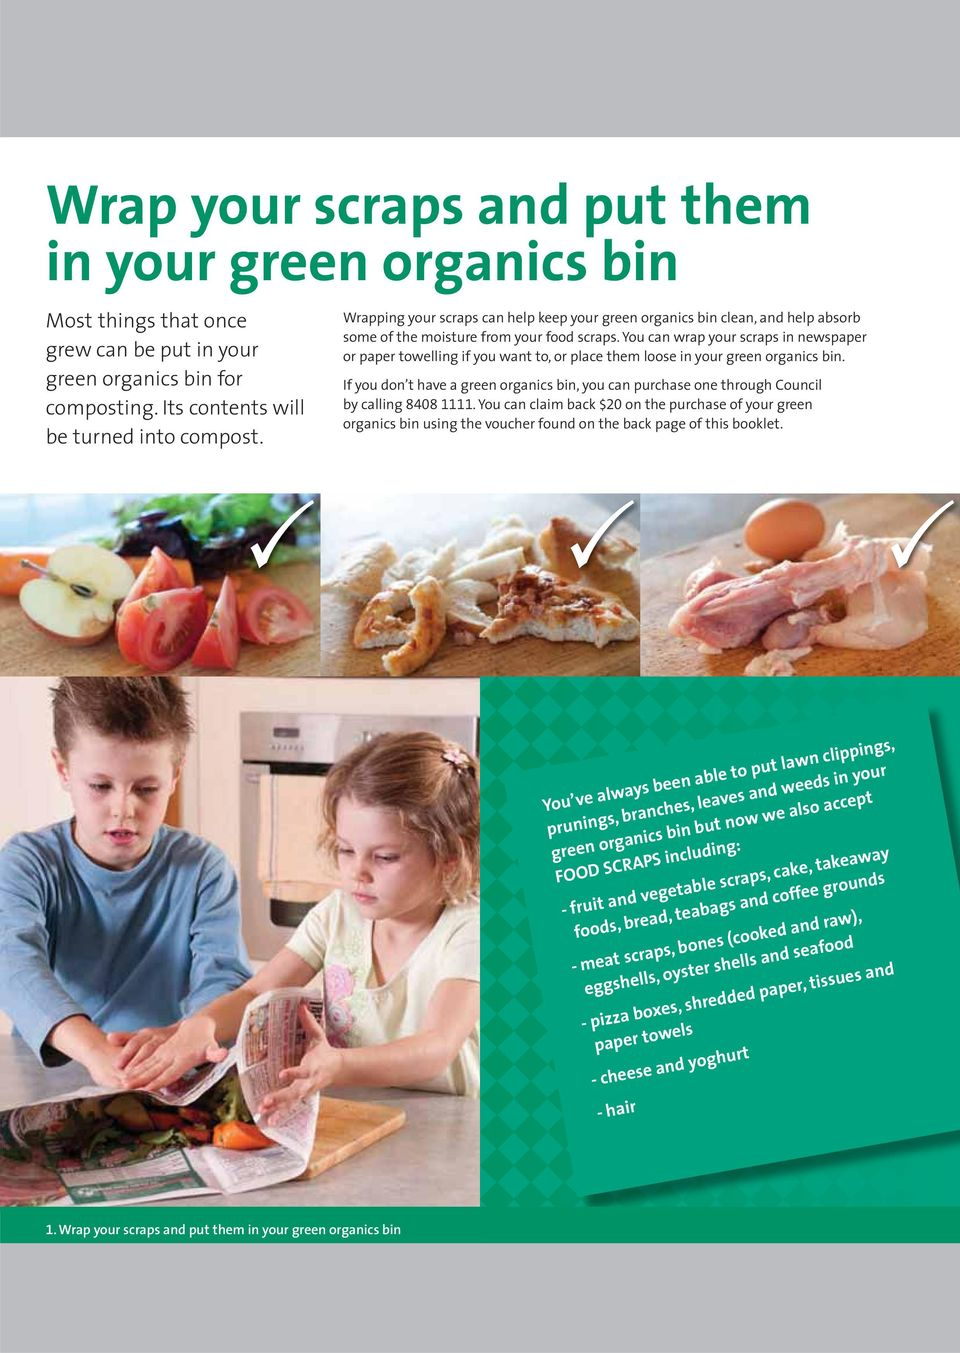 You can wrap your scraps in newspaper or paper towelling if you want to, or place them loose in your green organics bin.